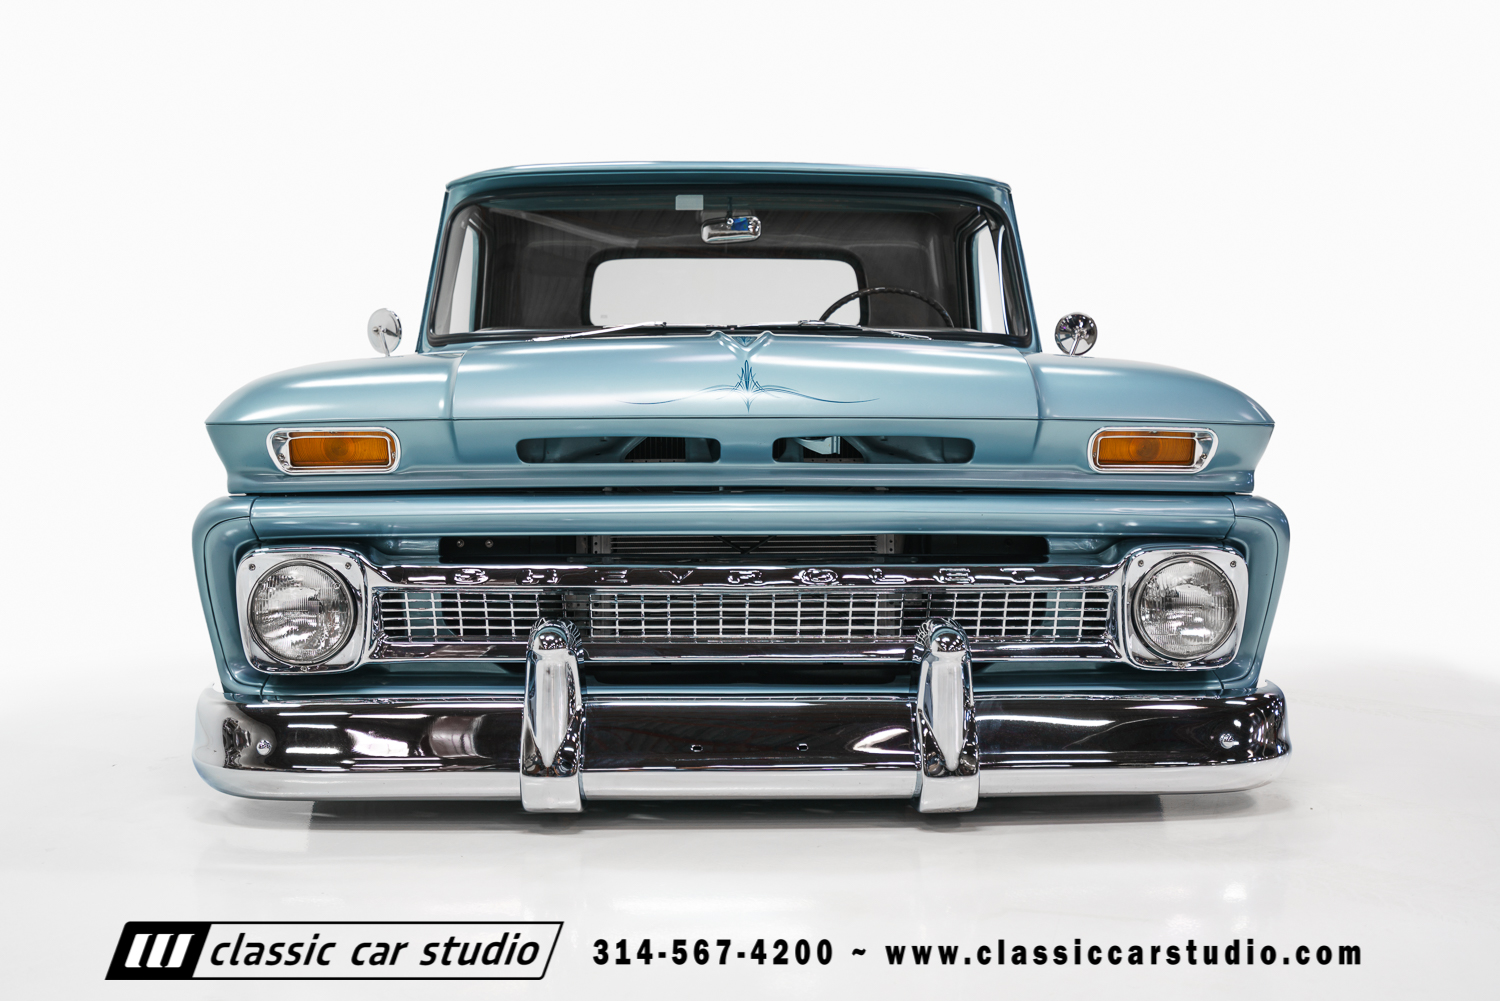 All Chevy chevy c-10 : 1966 Chevrolet C10 | Classic Car Studio